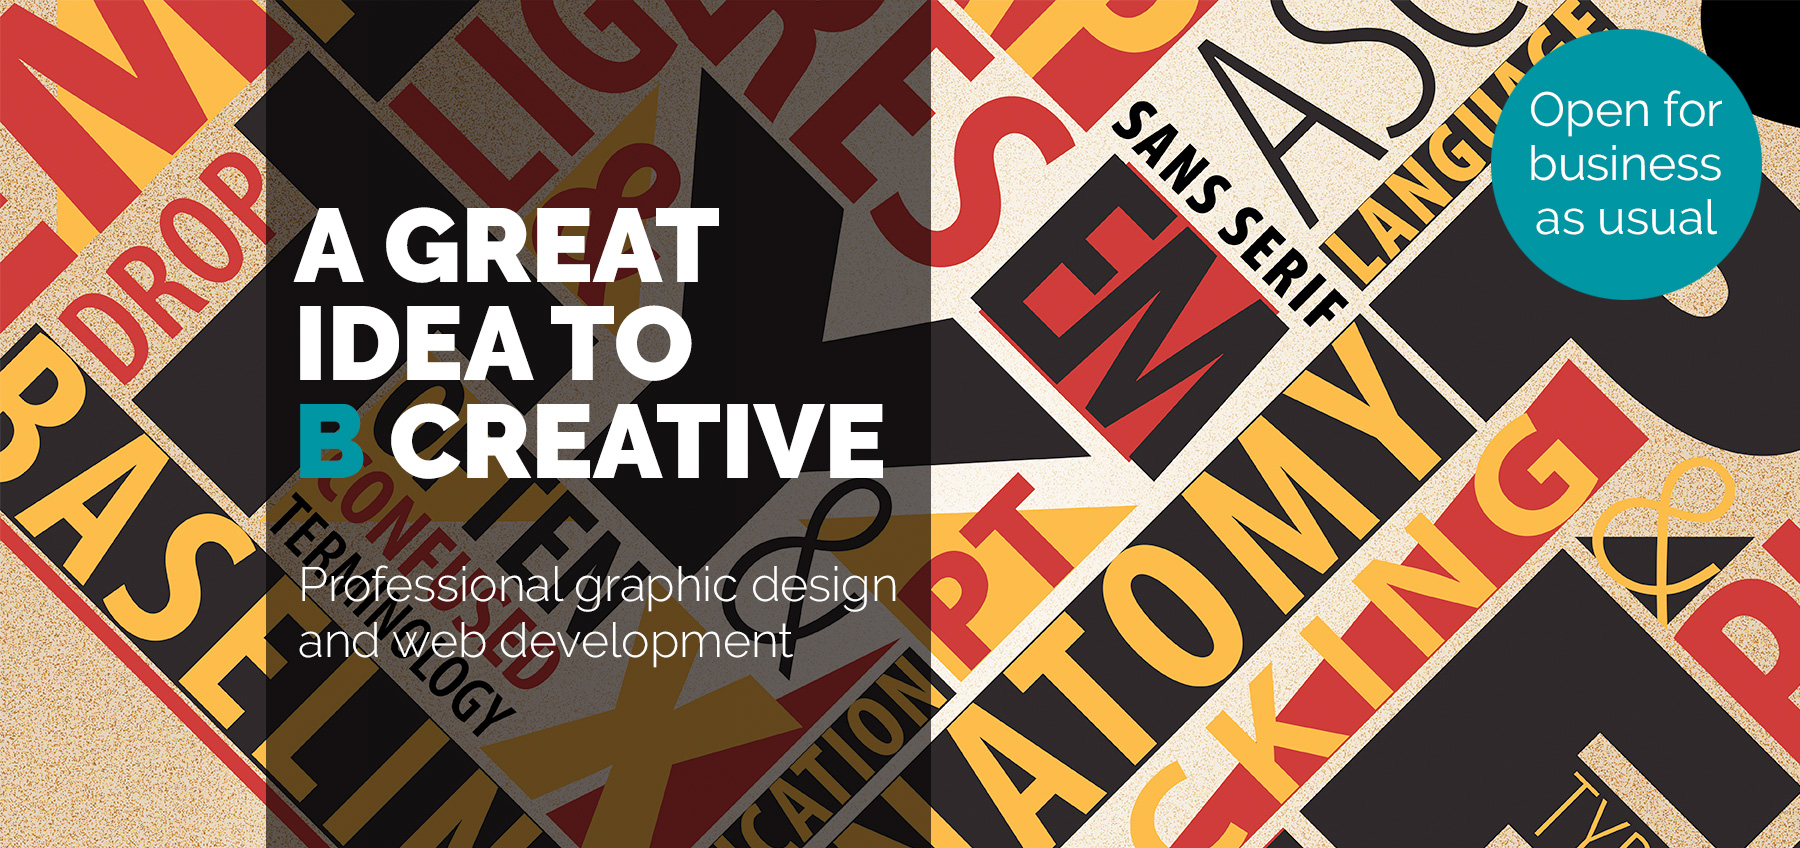 Graphic designers, marketing and branding West Sussex